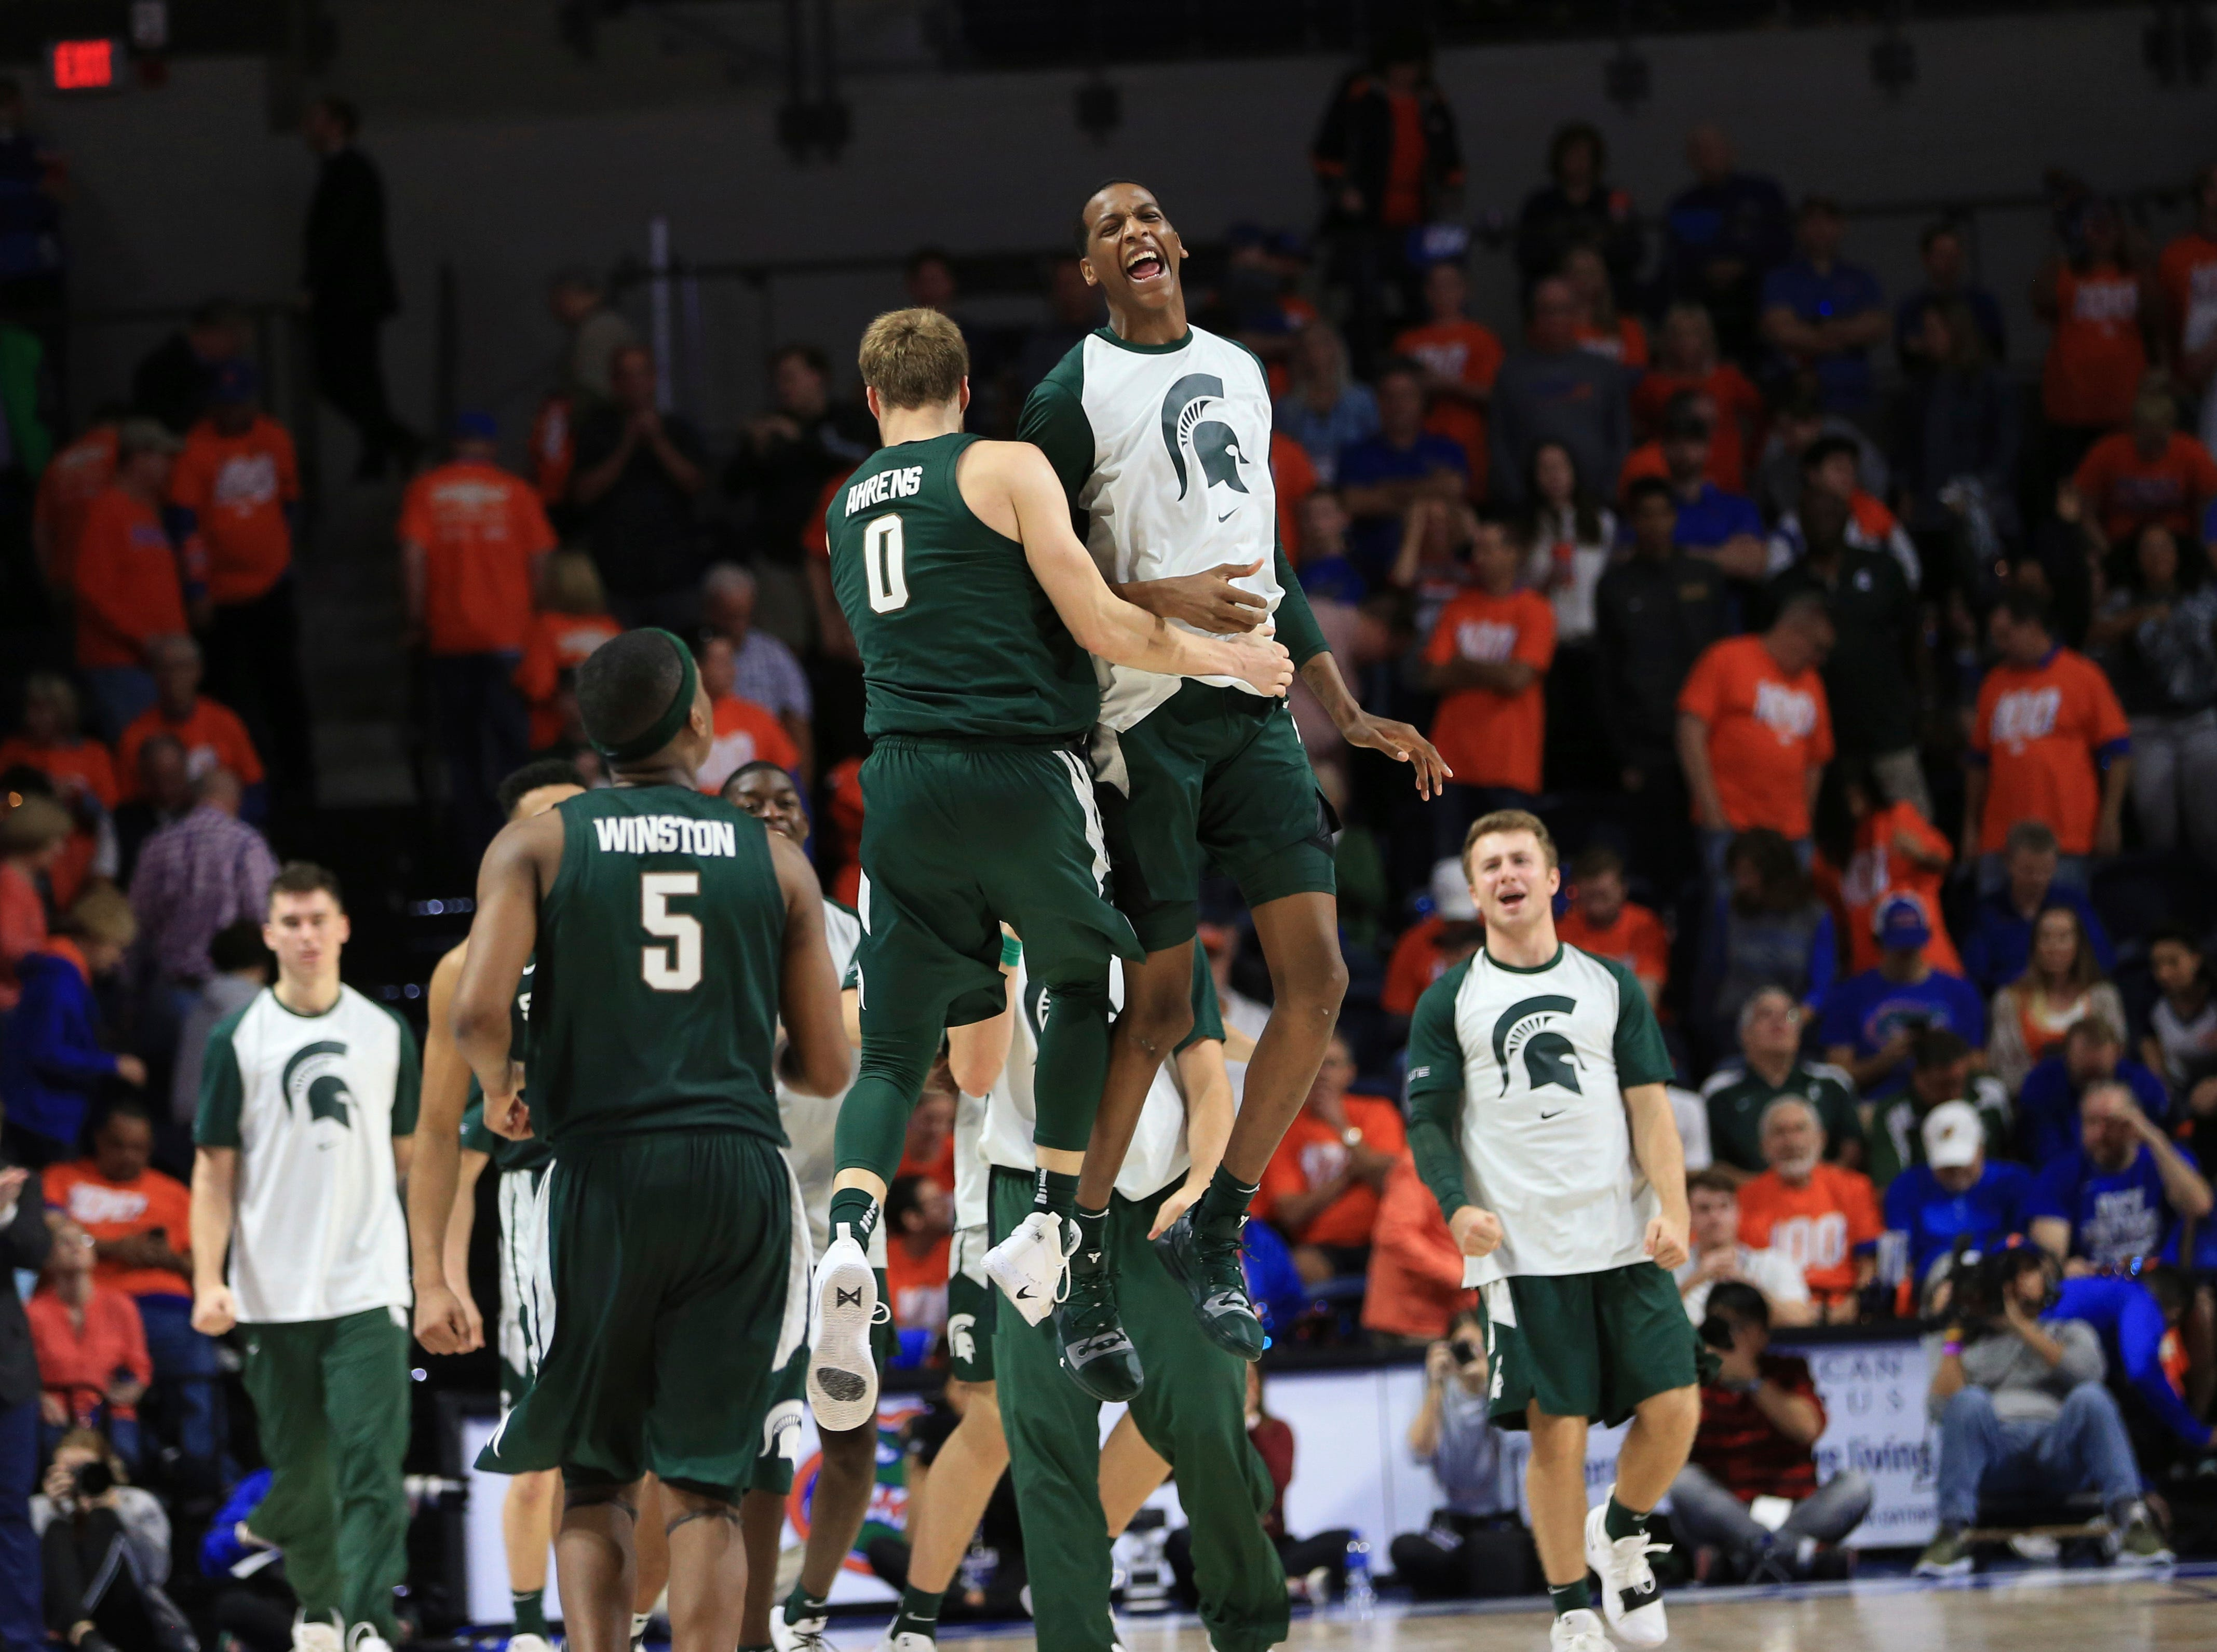 Michigan State forwards Kyle Ahrens (0) and Marcus Bingham Jr. (top) celebrate after Michigan State defeated Florida 63-59.